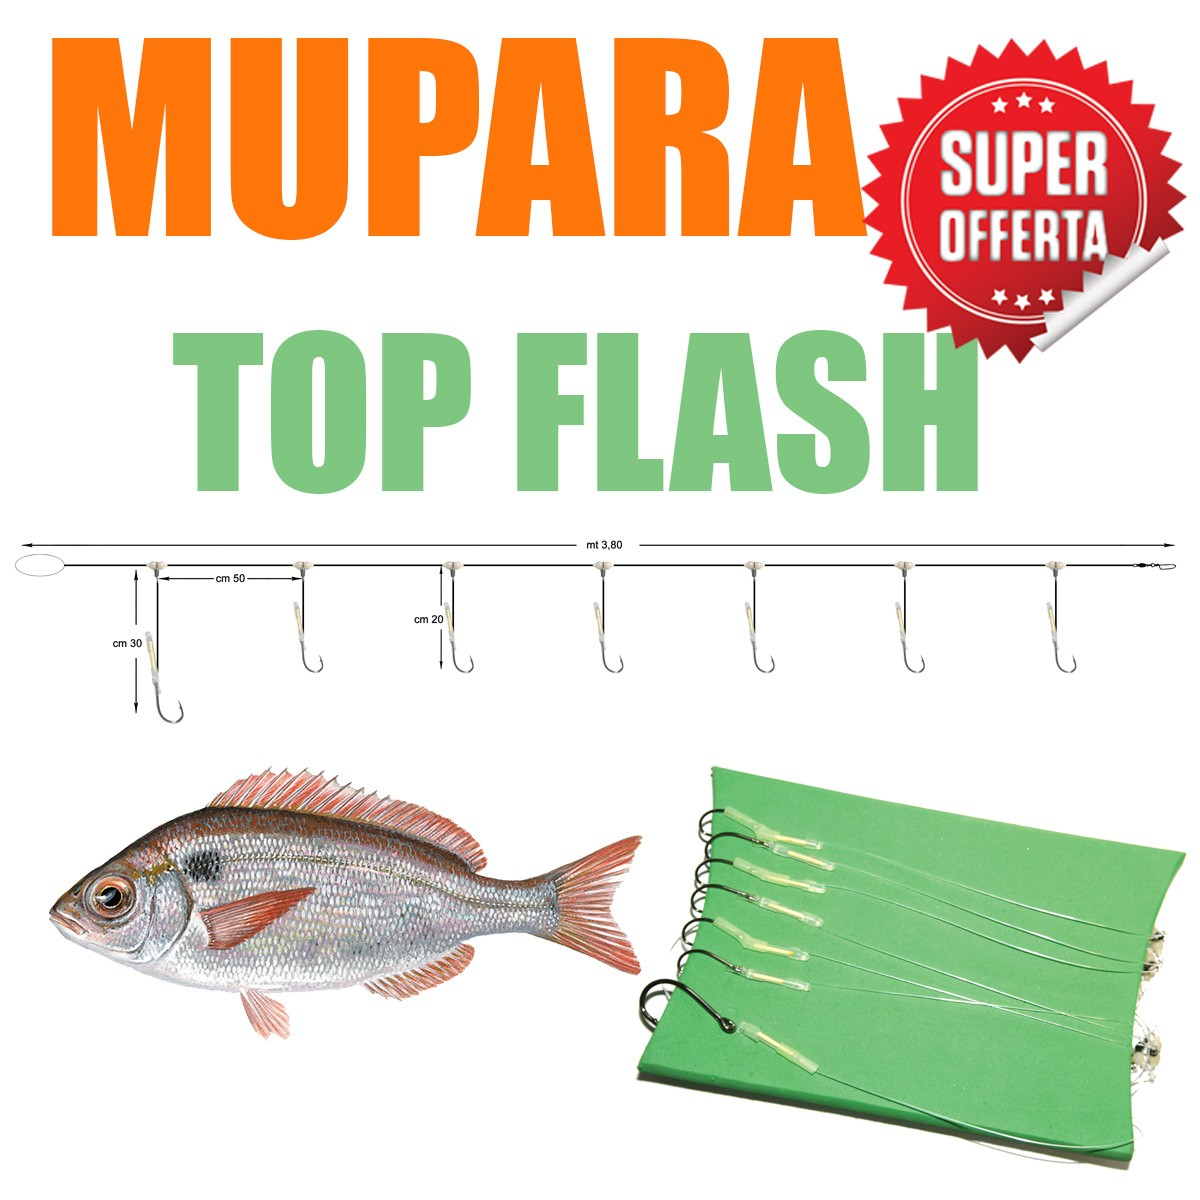 MUPARA TOP FLASH